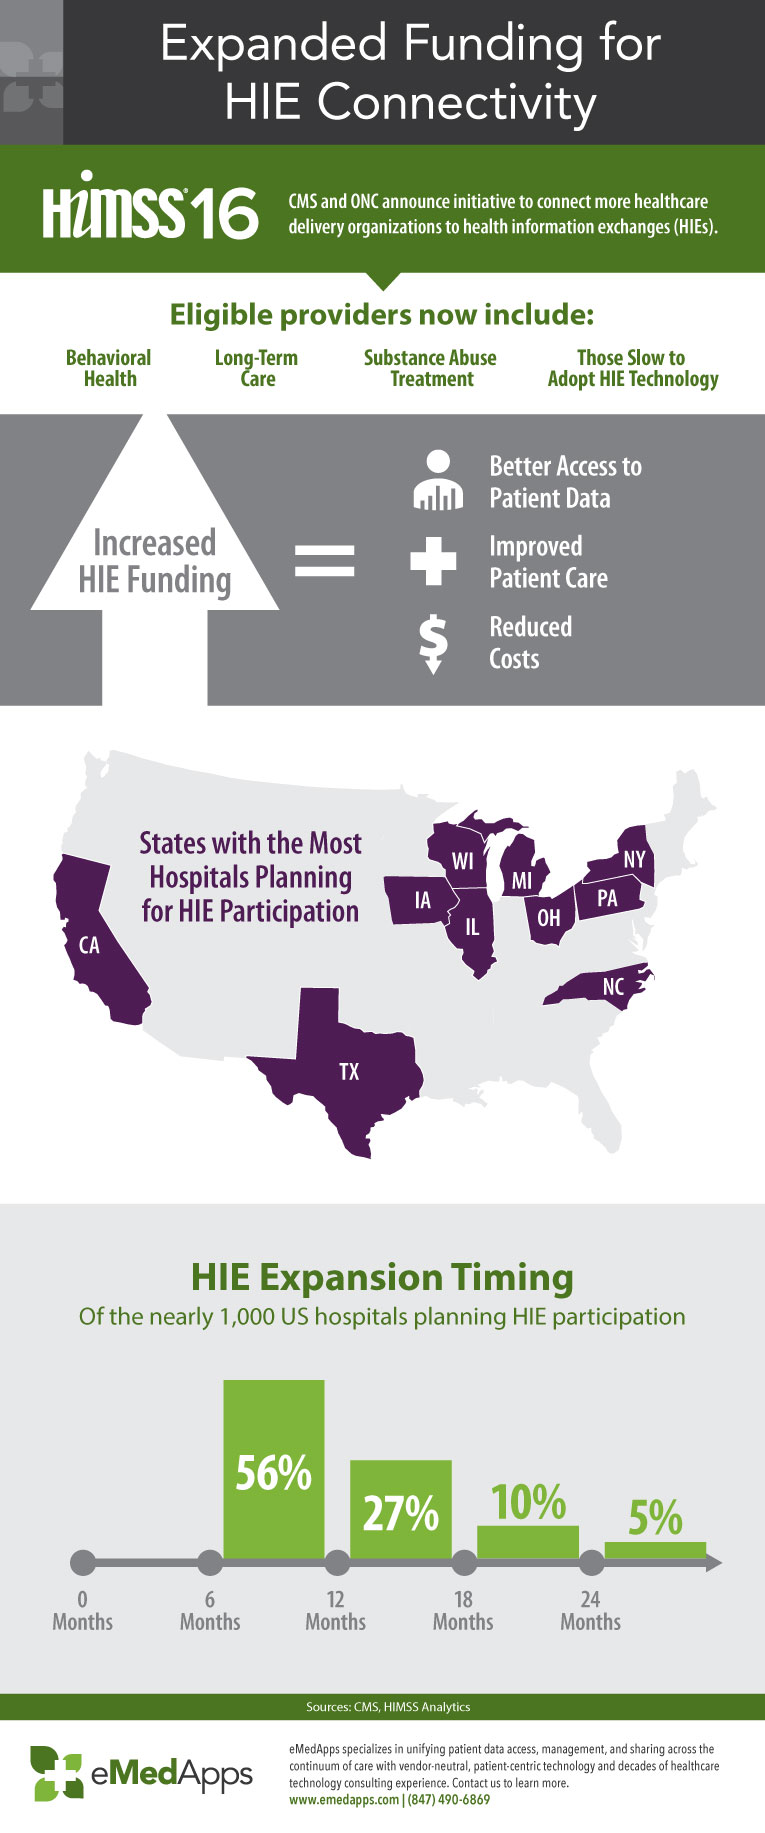 Expanded Funding for HIE Connectivity